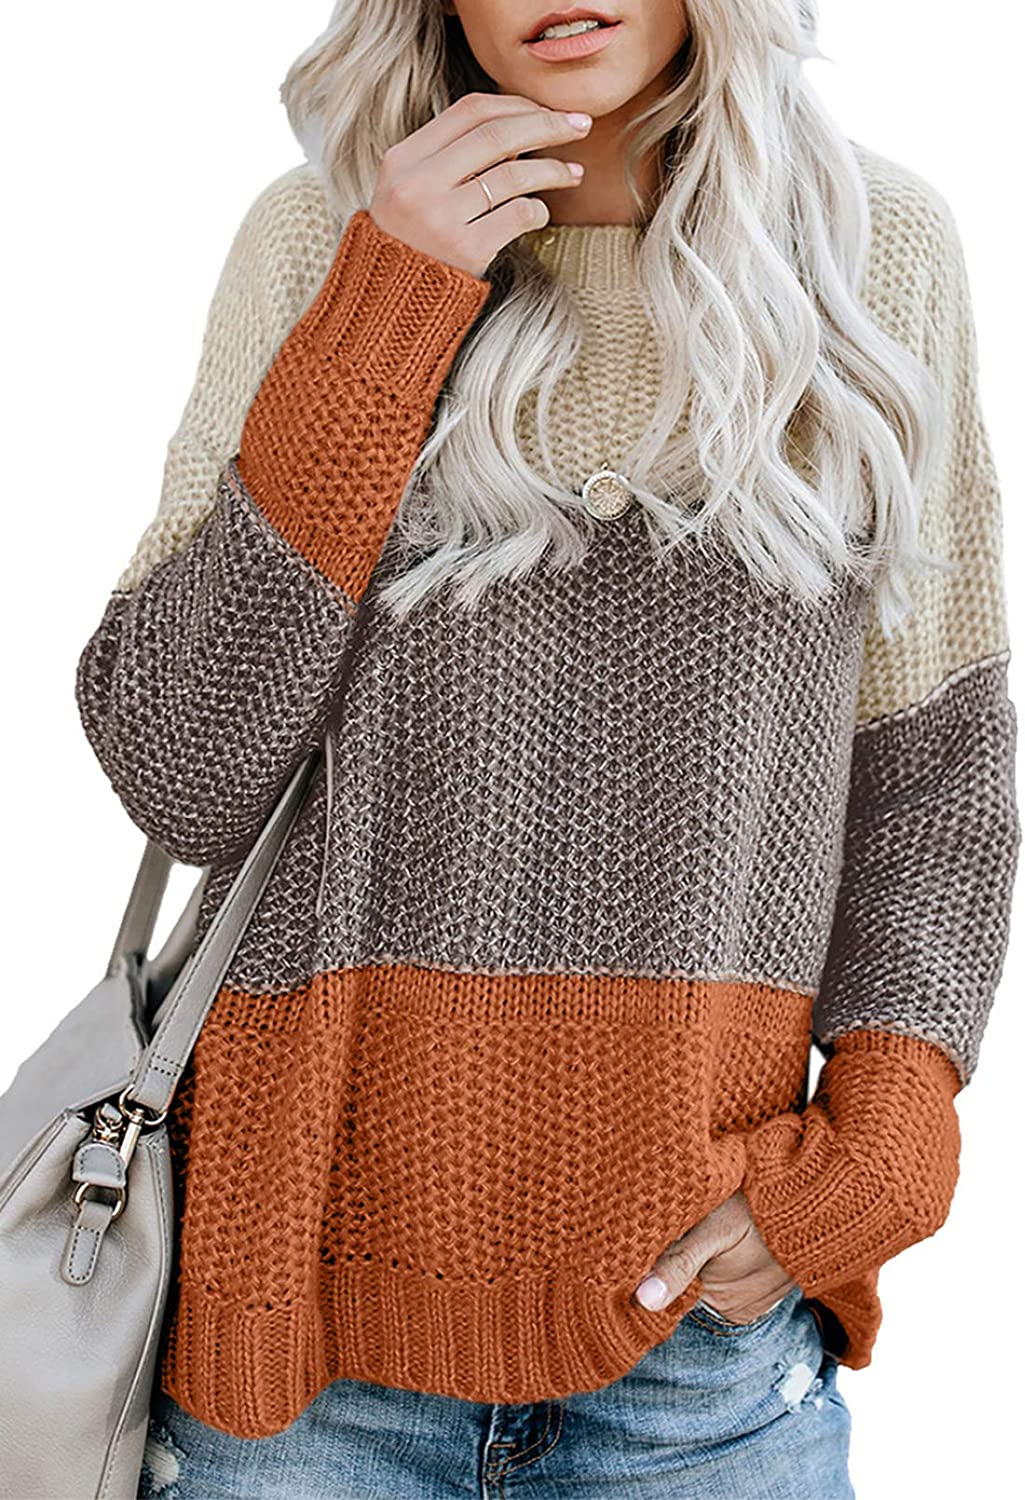 Zecilbo Women's Fashion Color Block Crewneck Pullover Sweaters Long Sleeve Knit Jumper Tops